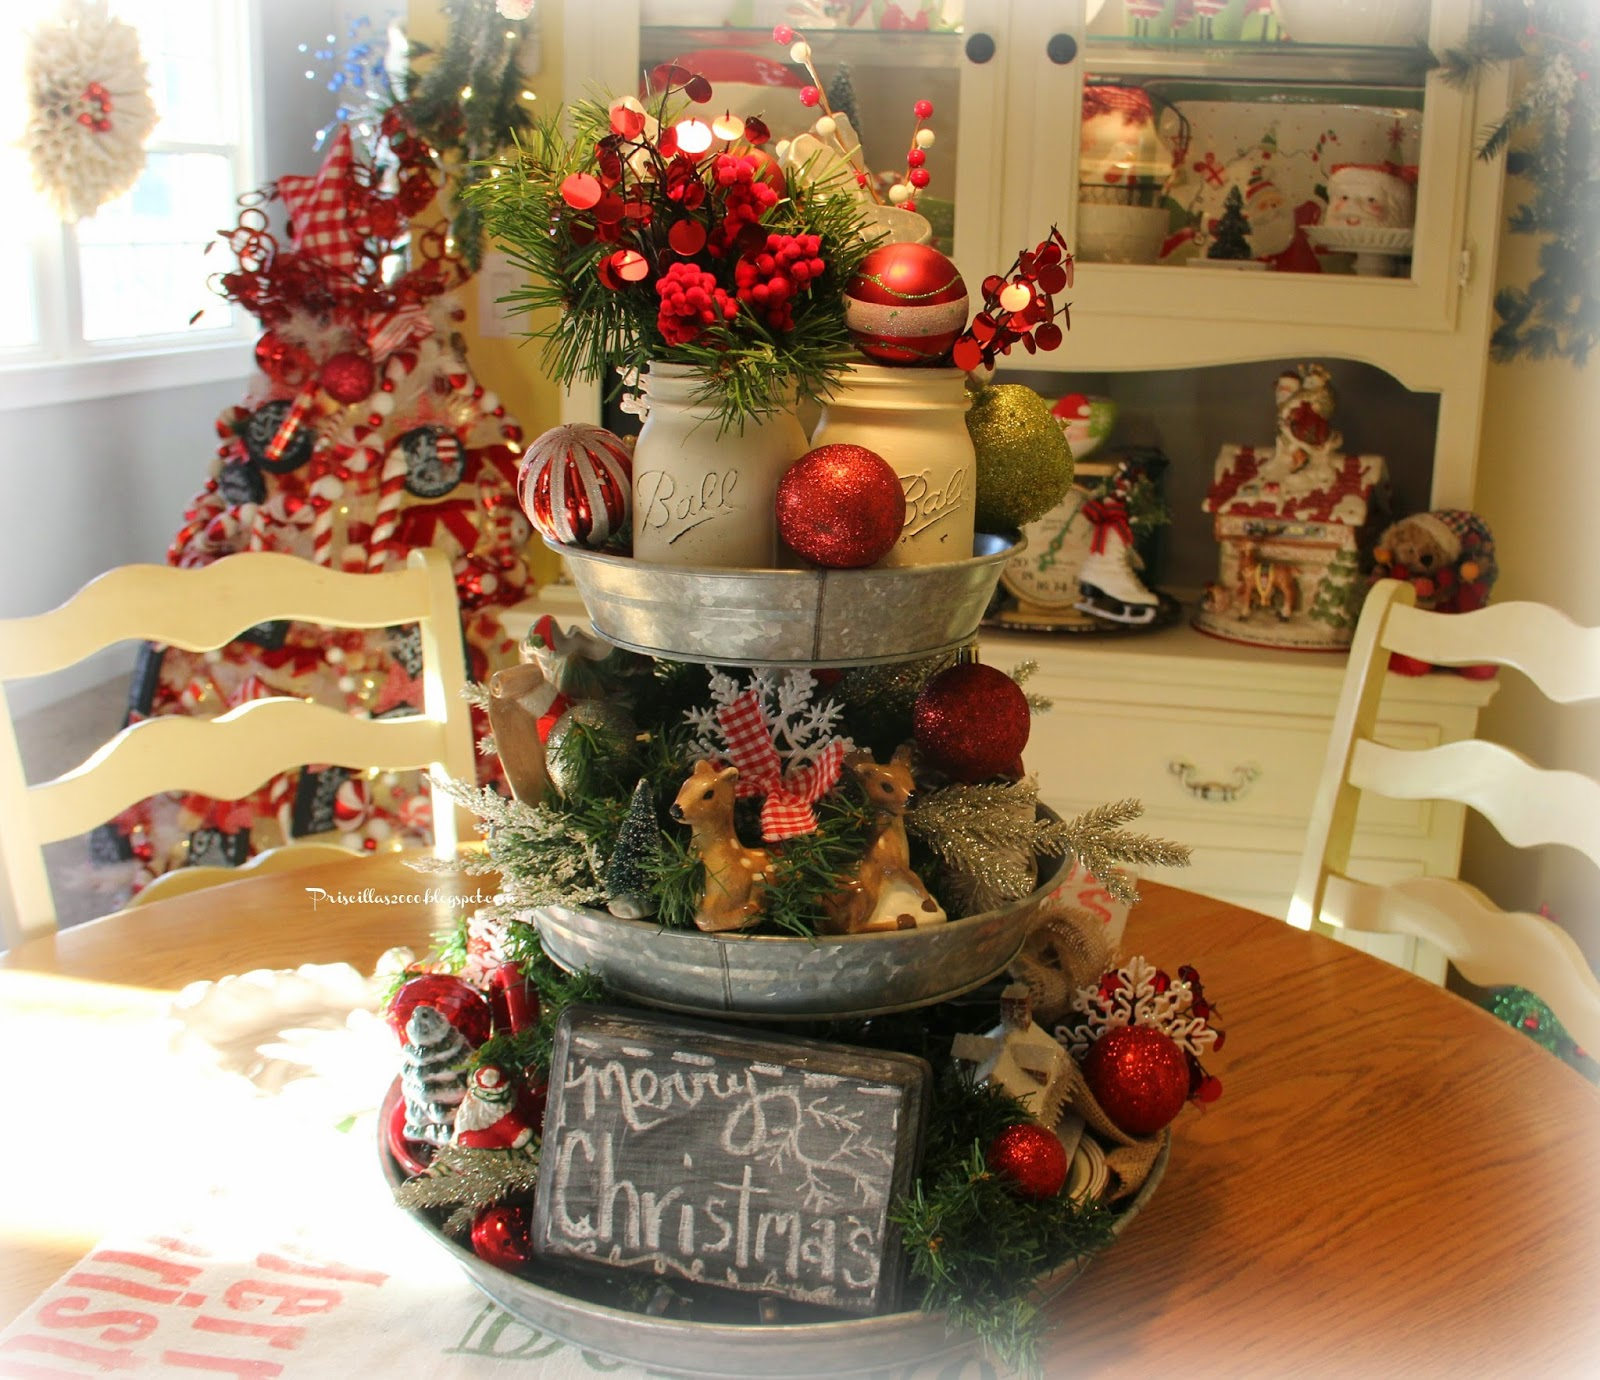 Kitchen Table Decorations For Christmas: Priscillas: Christmas Galvanized Tray Centerpiece